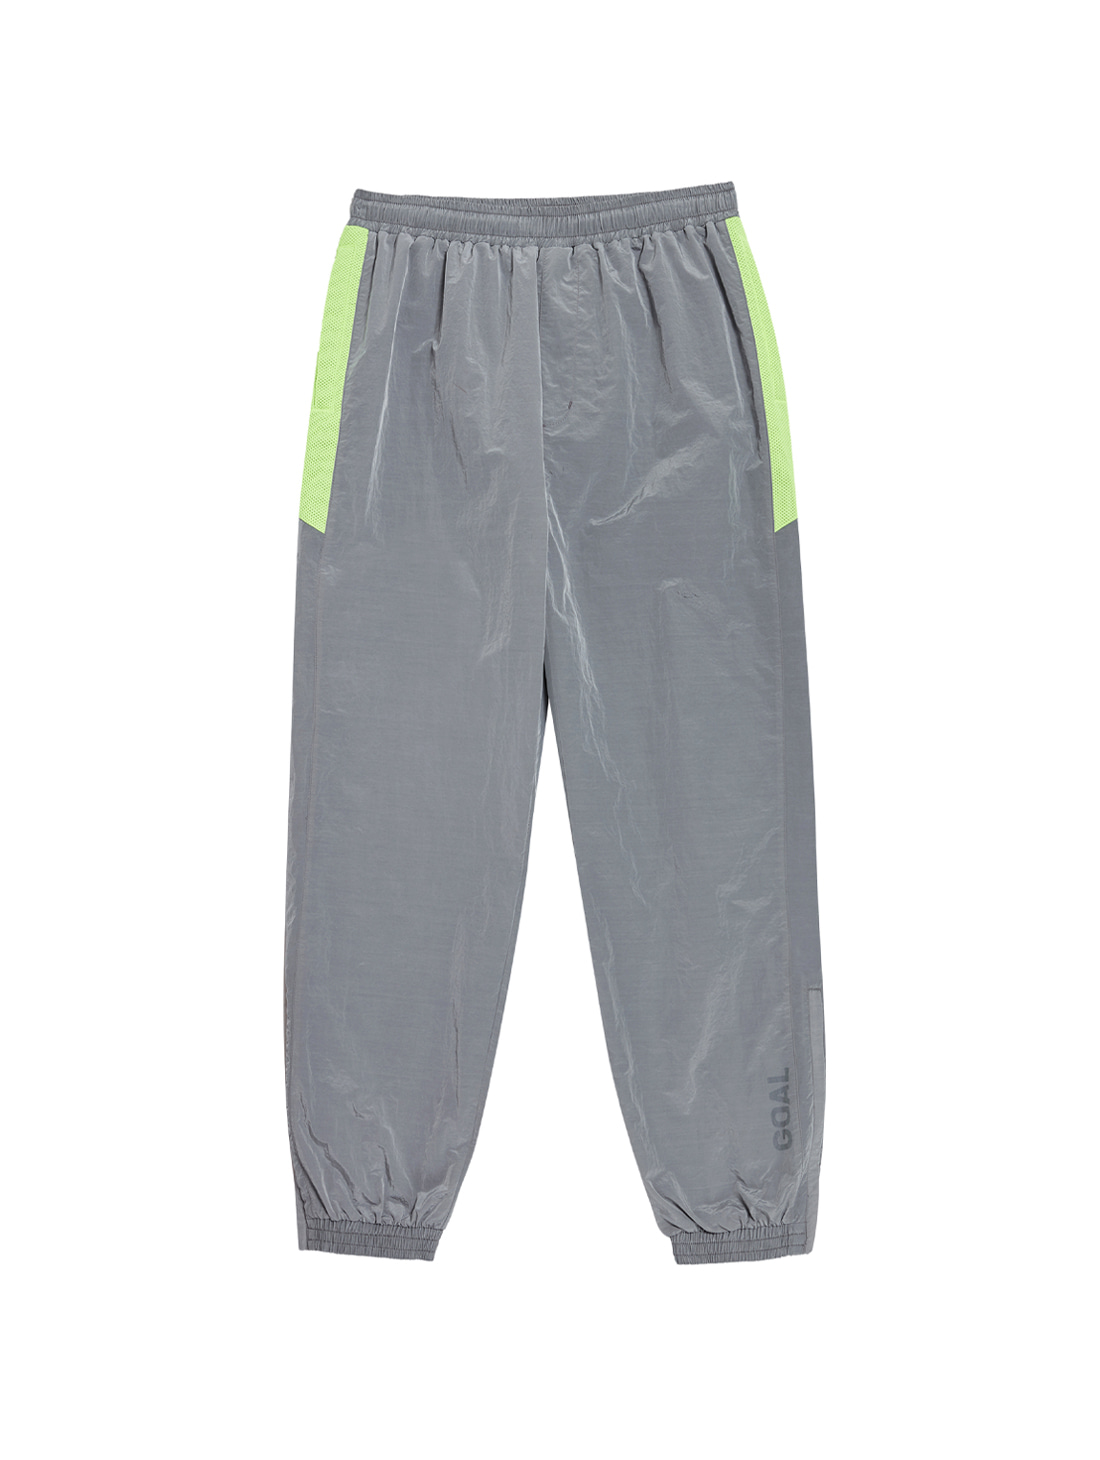 WARMUP PANTS - GREY